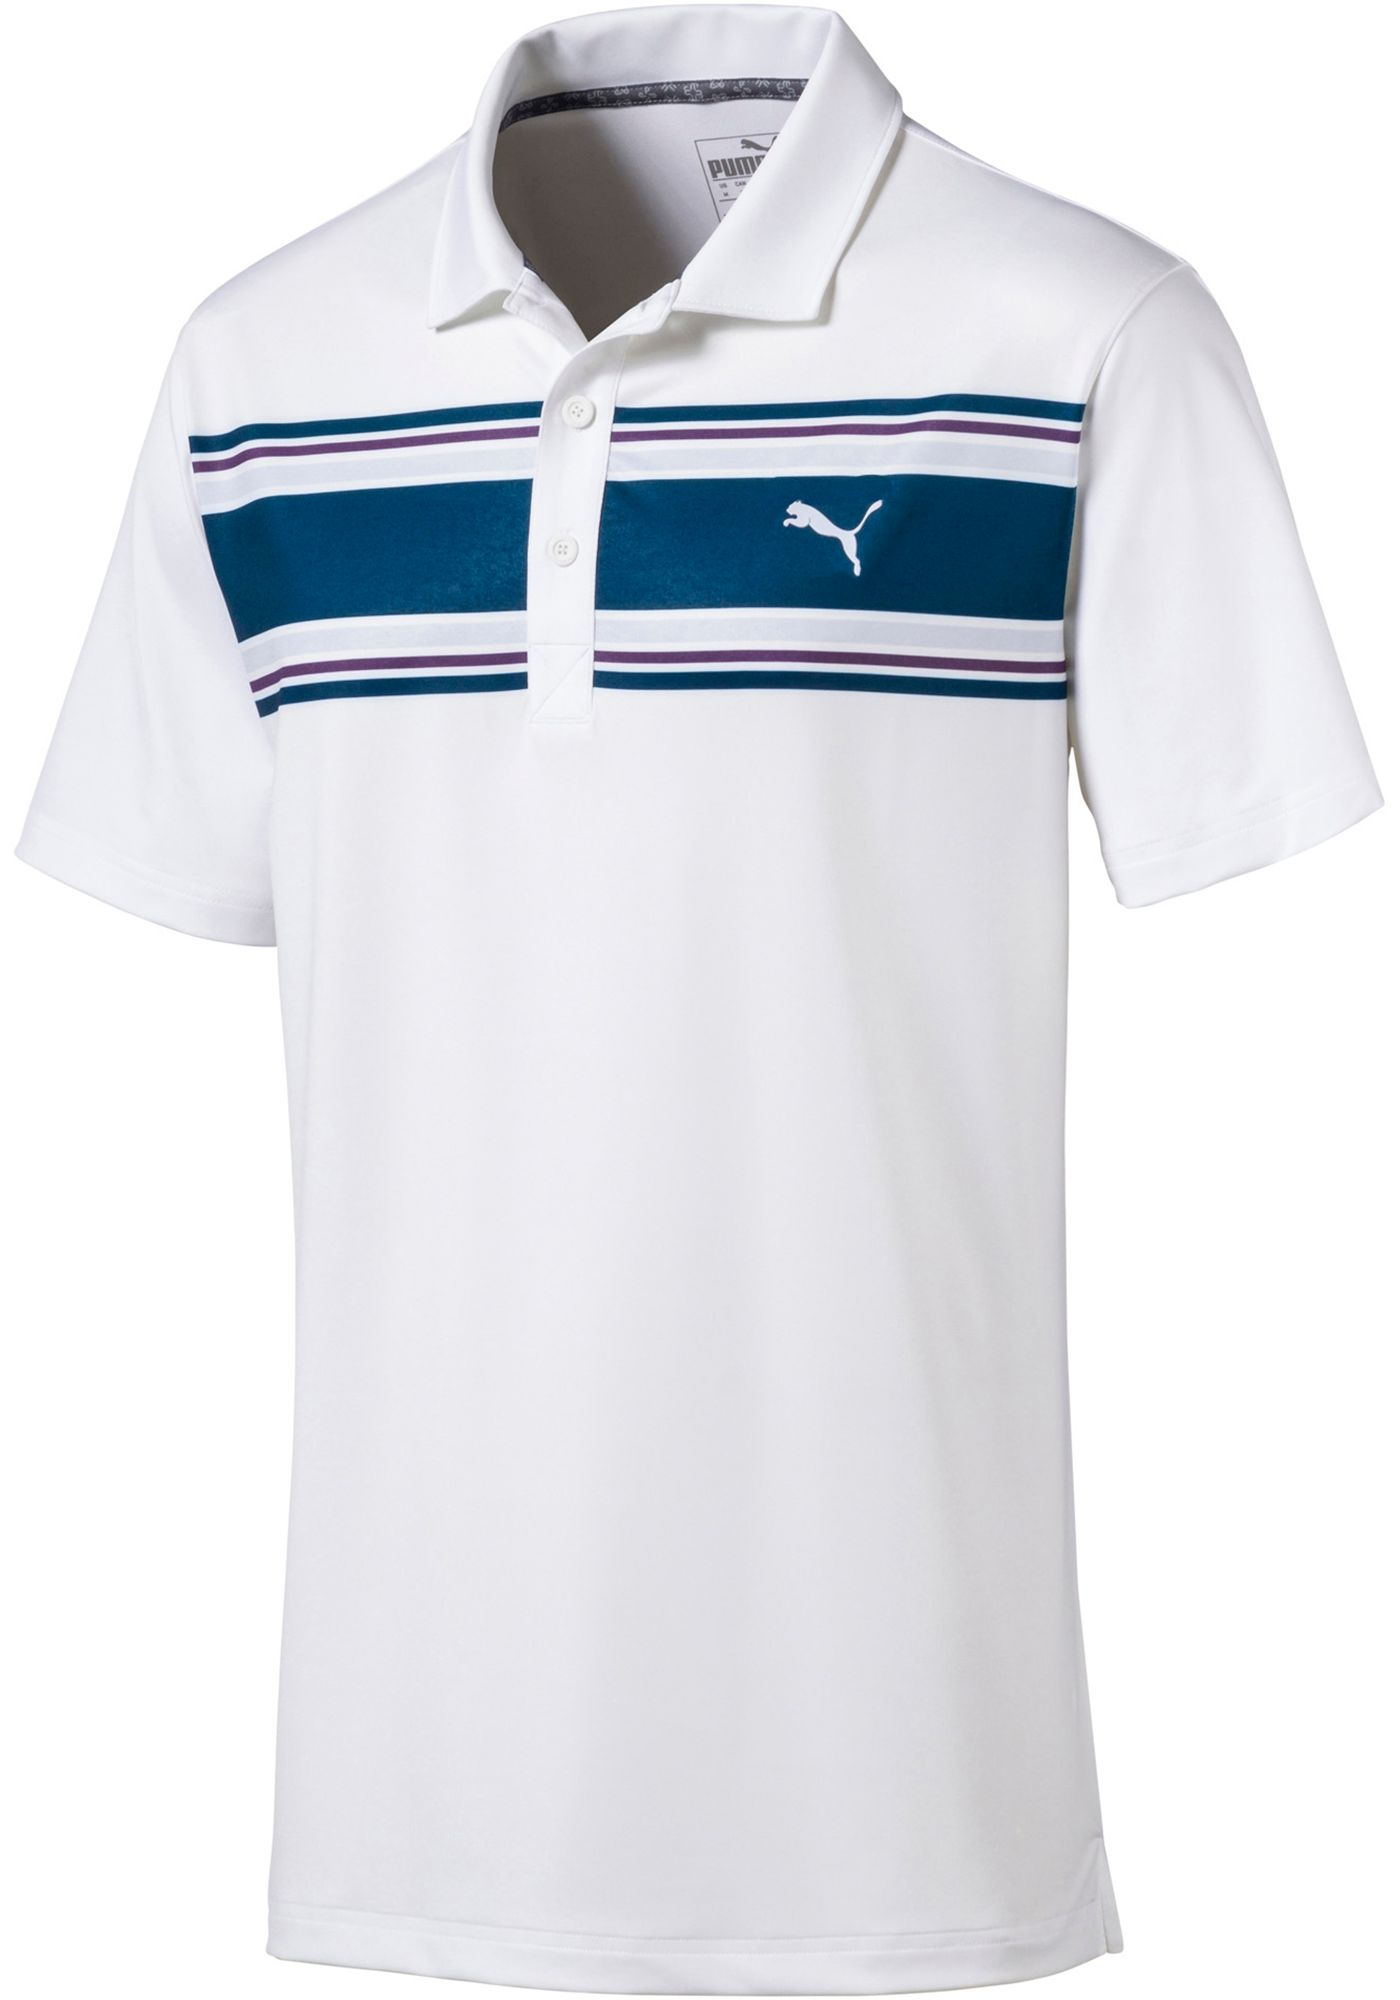 PUMA Men's Montauk Golf Polo